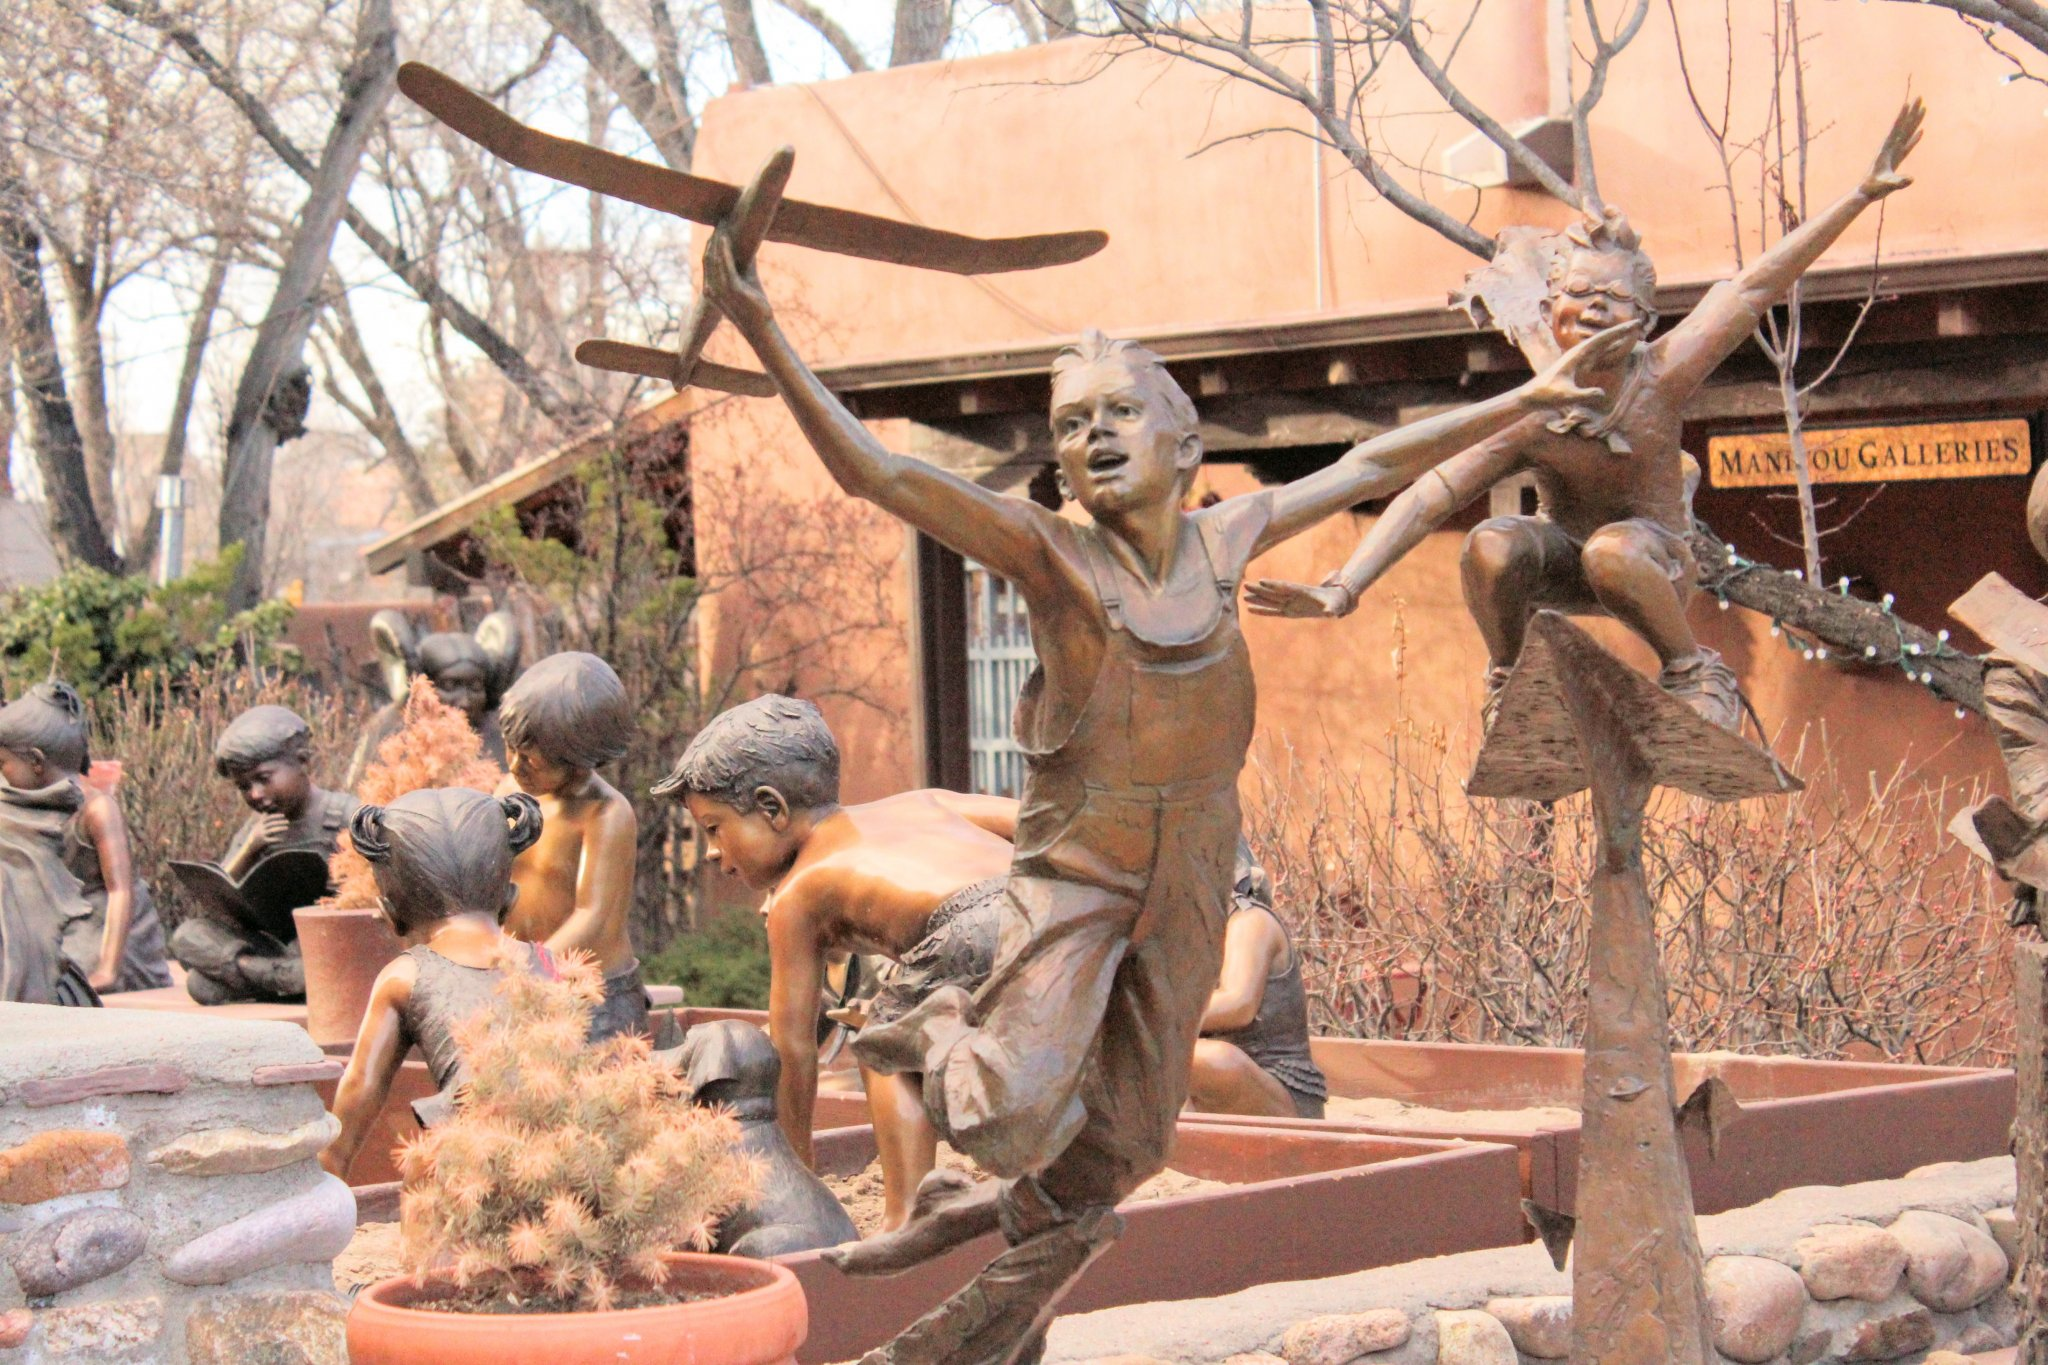 Guide to Canyon Road: Statues of Children in Meyers Gallery